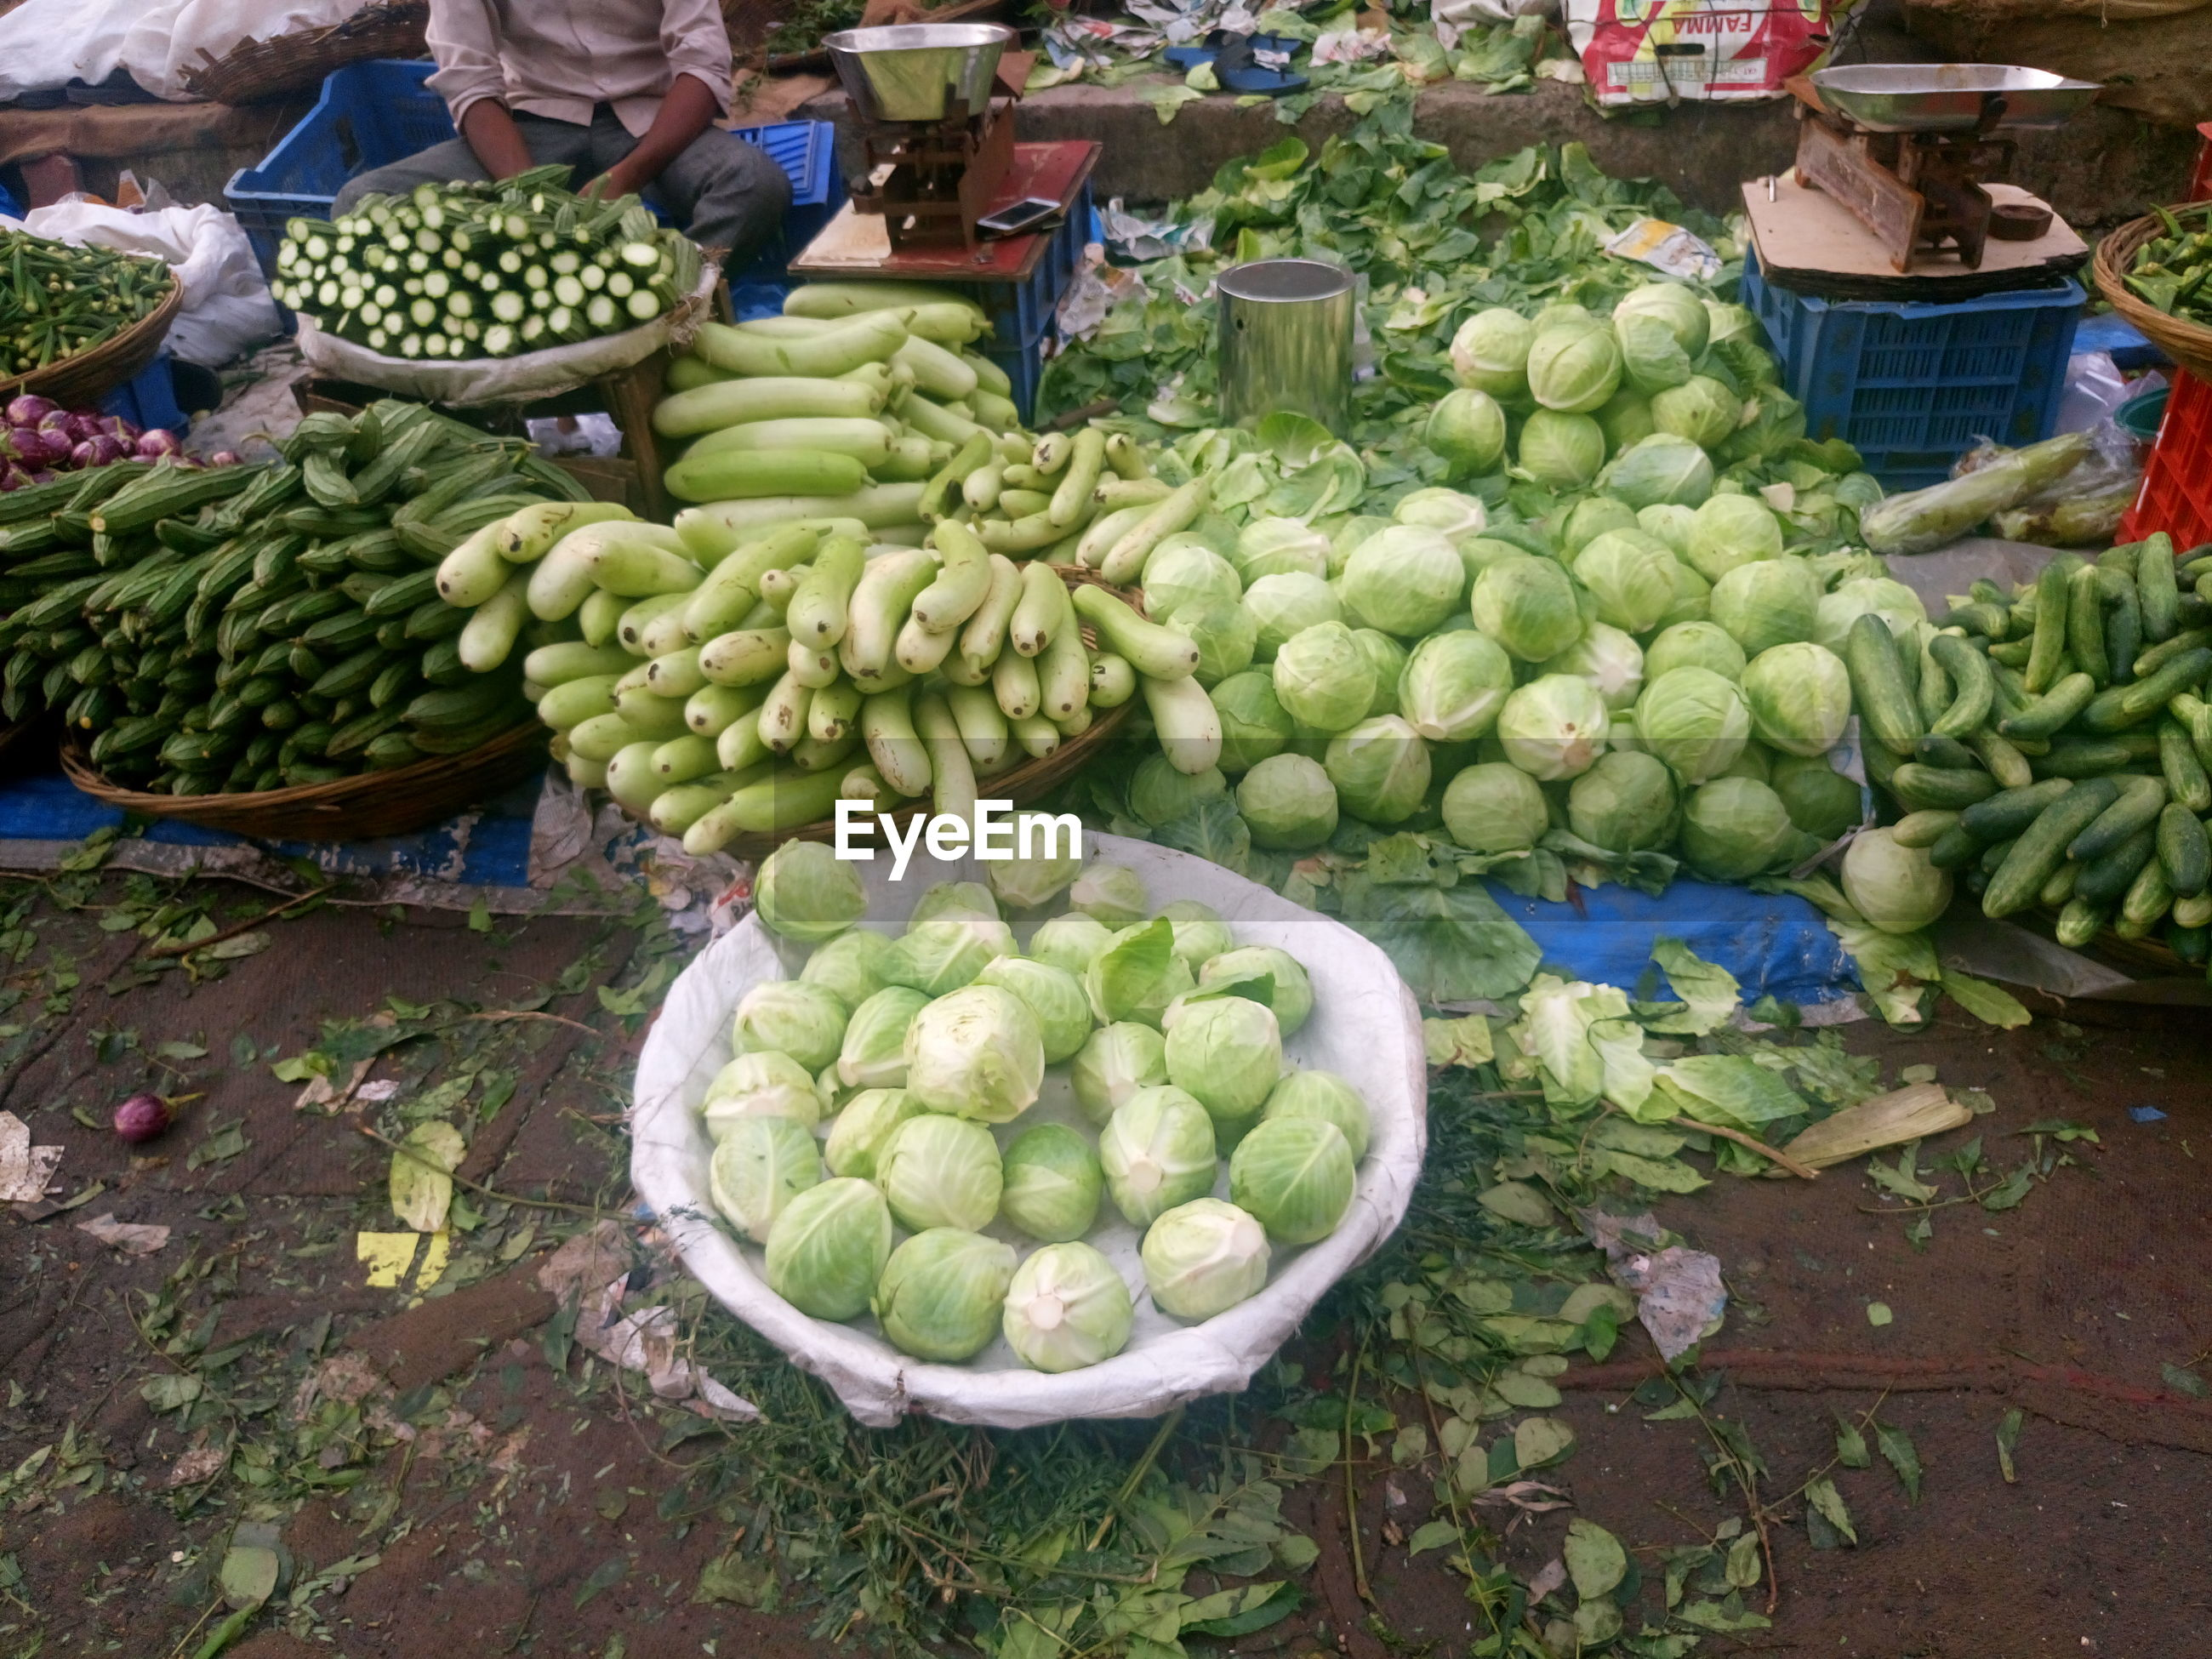 Vendor with various vegetables for sale at market